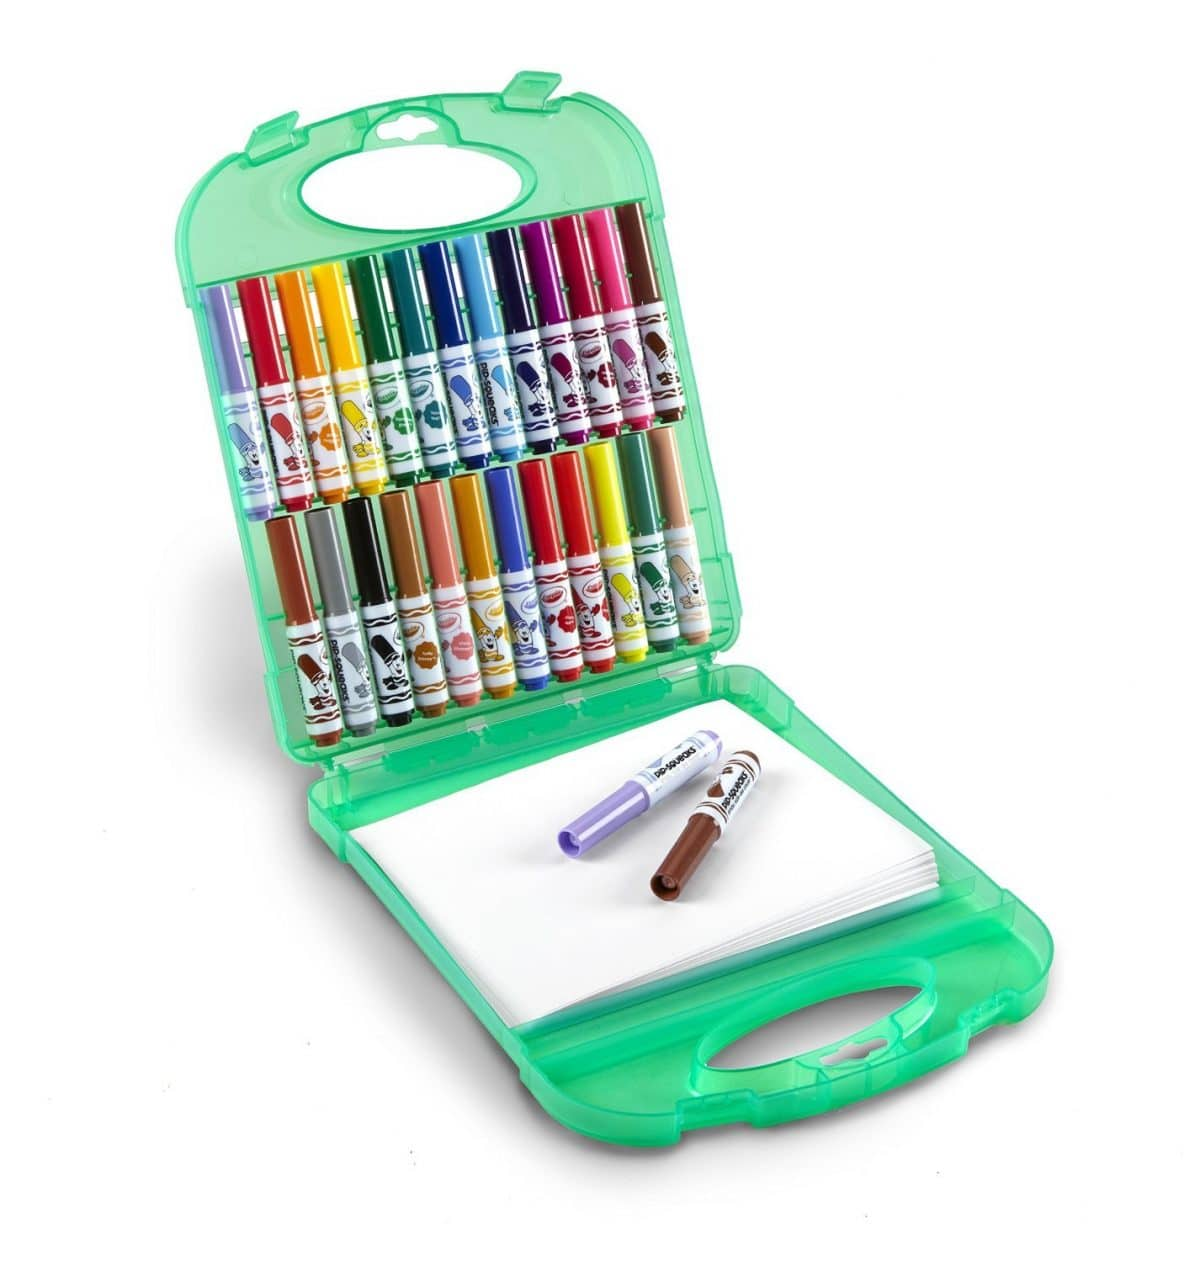 Best Crayola Toys For Kids To Buy 2020 Littleonemag